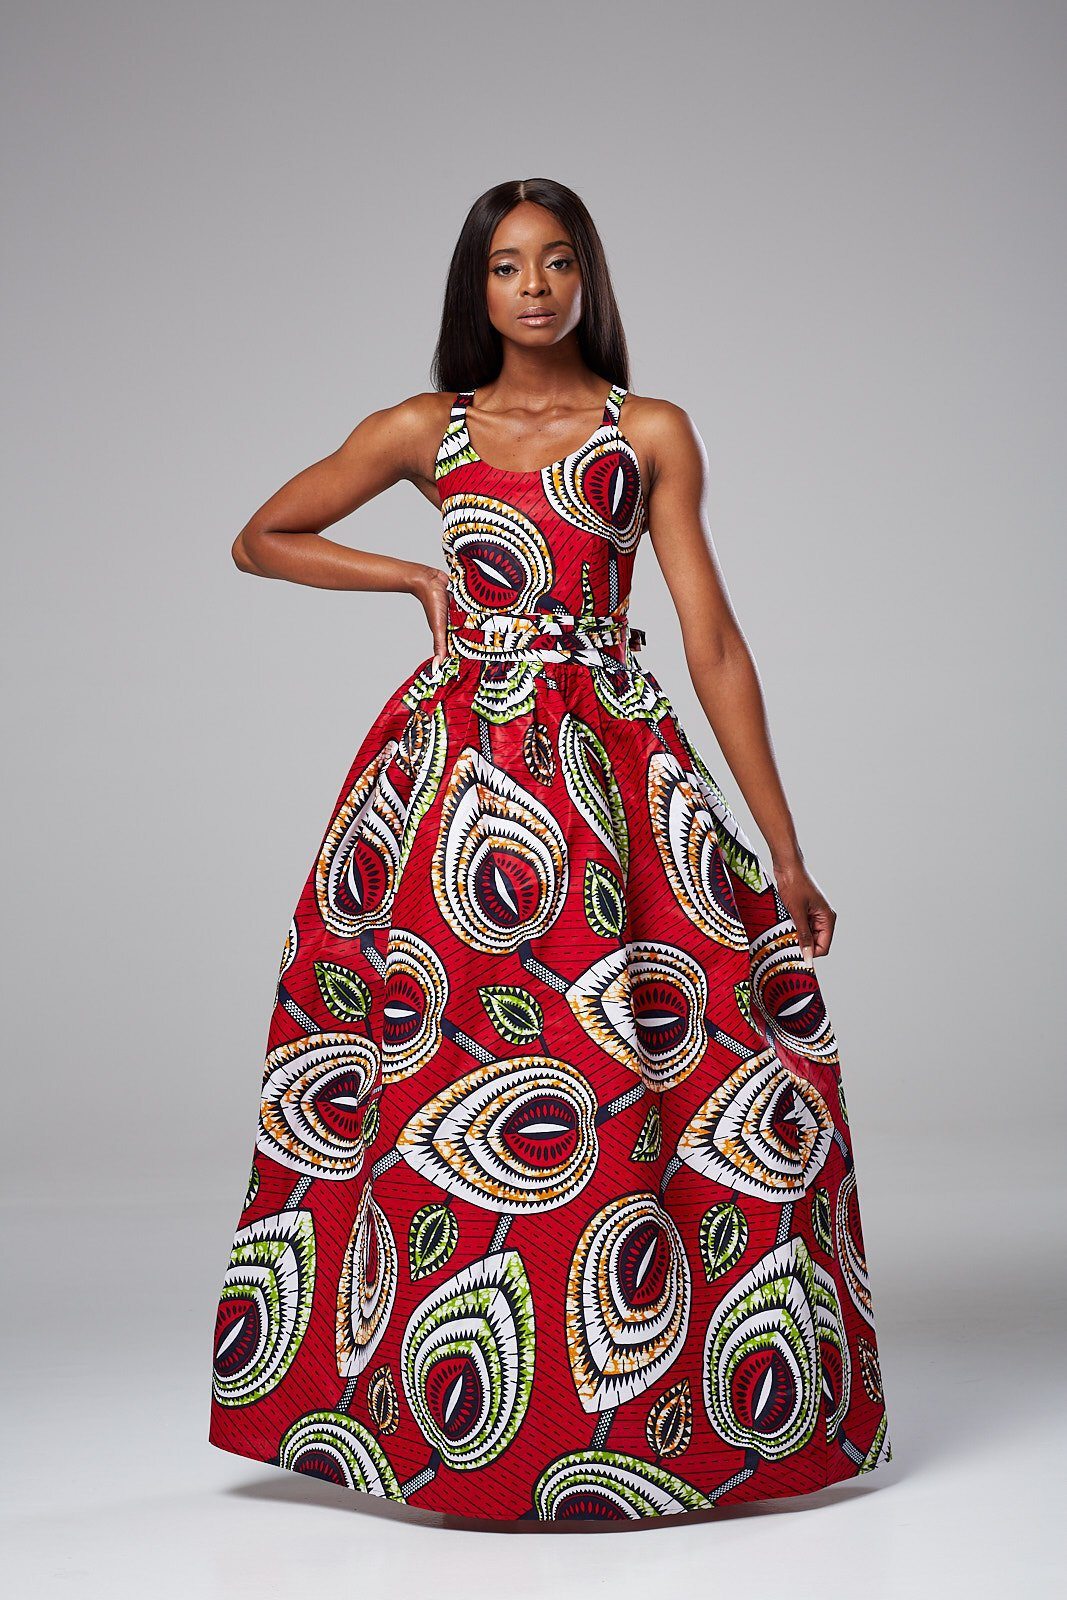 472b32a63483 The best selection of over 50 best African print dresses for special  occasions. These dresses